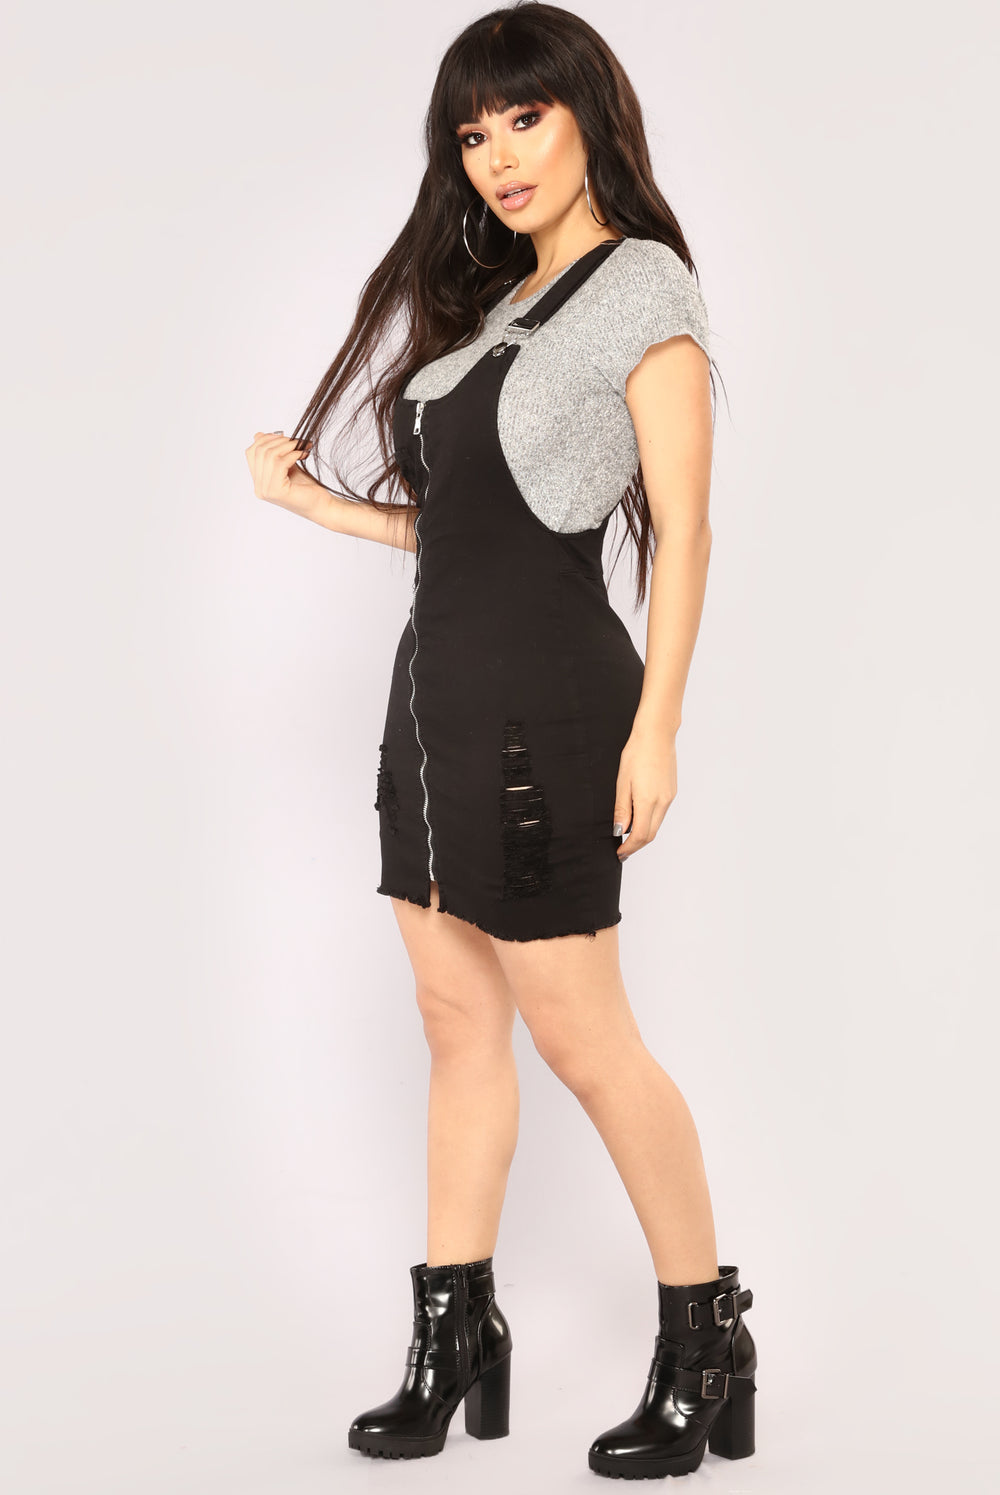 Take The Wheel Overall Dress - Black